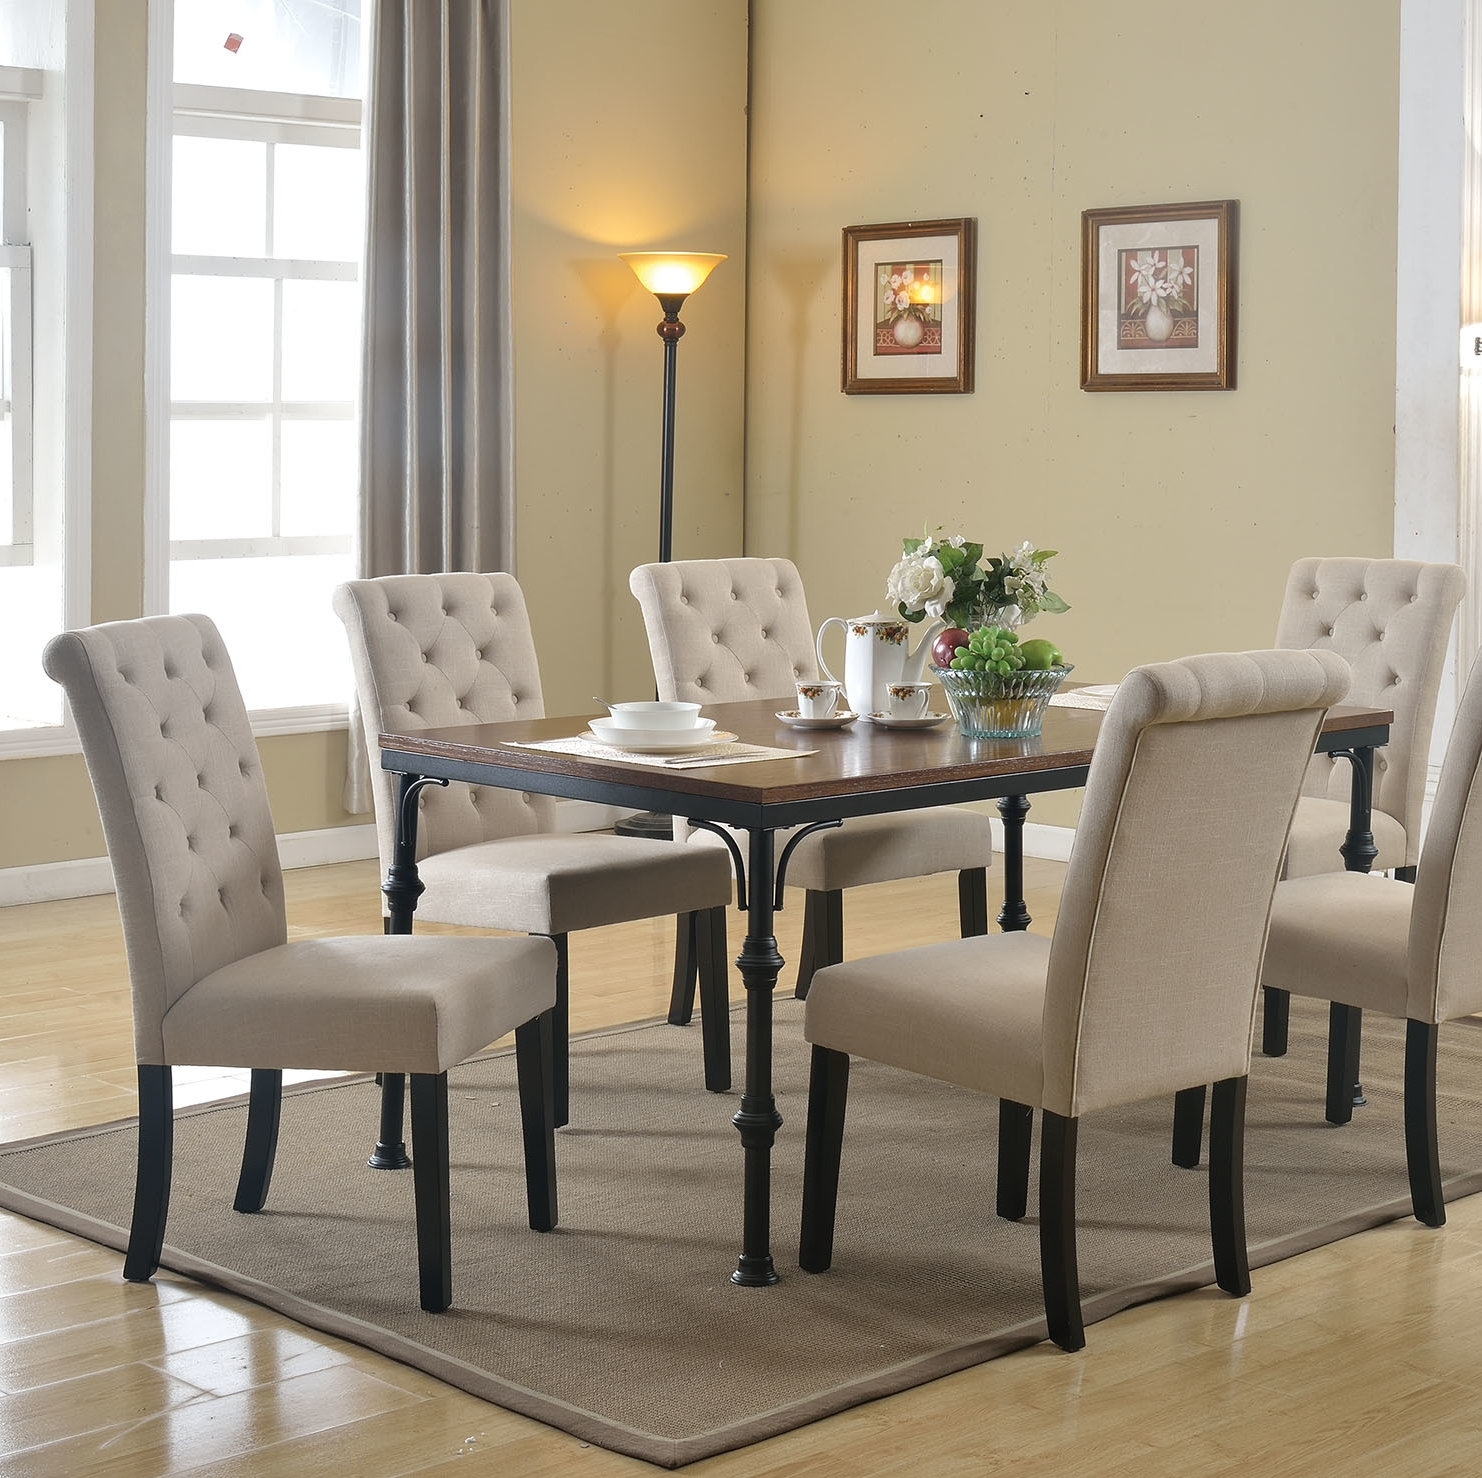 Gracie Oaks Tyerell 7 Piece Dining Set | Wayfair Within Best And Newest Caira Black 7 Piece Dining Sets With Upholstered Side Chairs (Image 9 of 20)